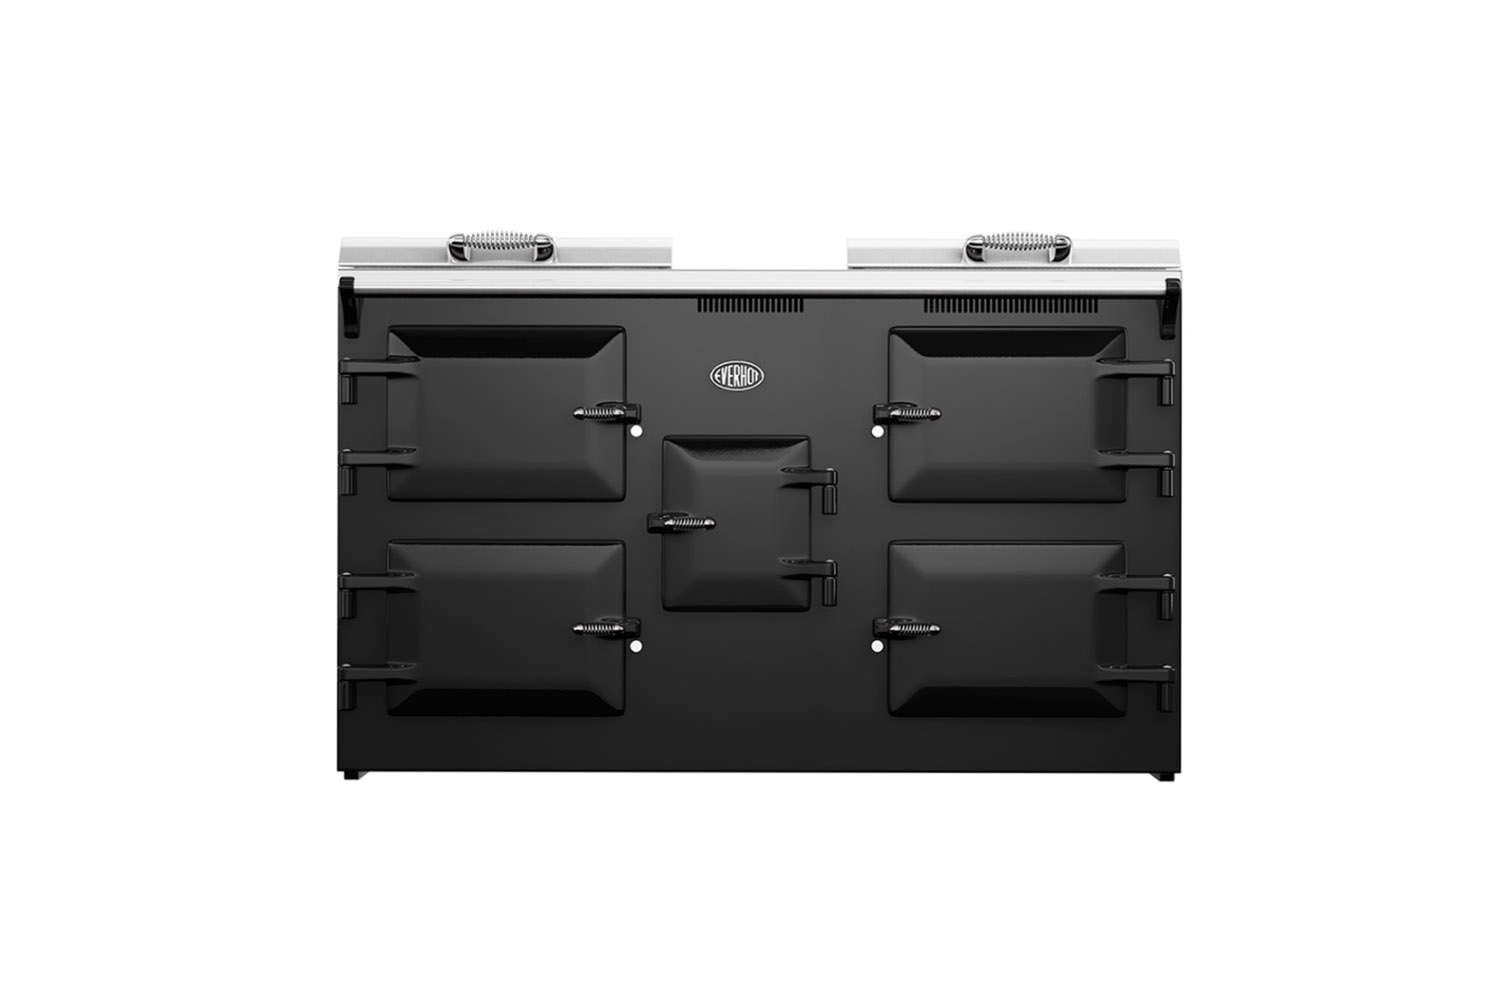 The Everhot Range Cooker 0 Series is available in black and a range of other colors. Contact Everhot for more information.